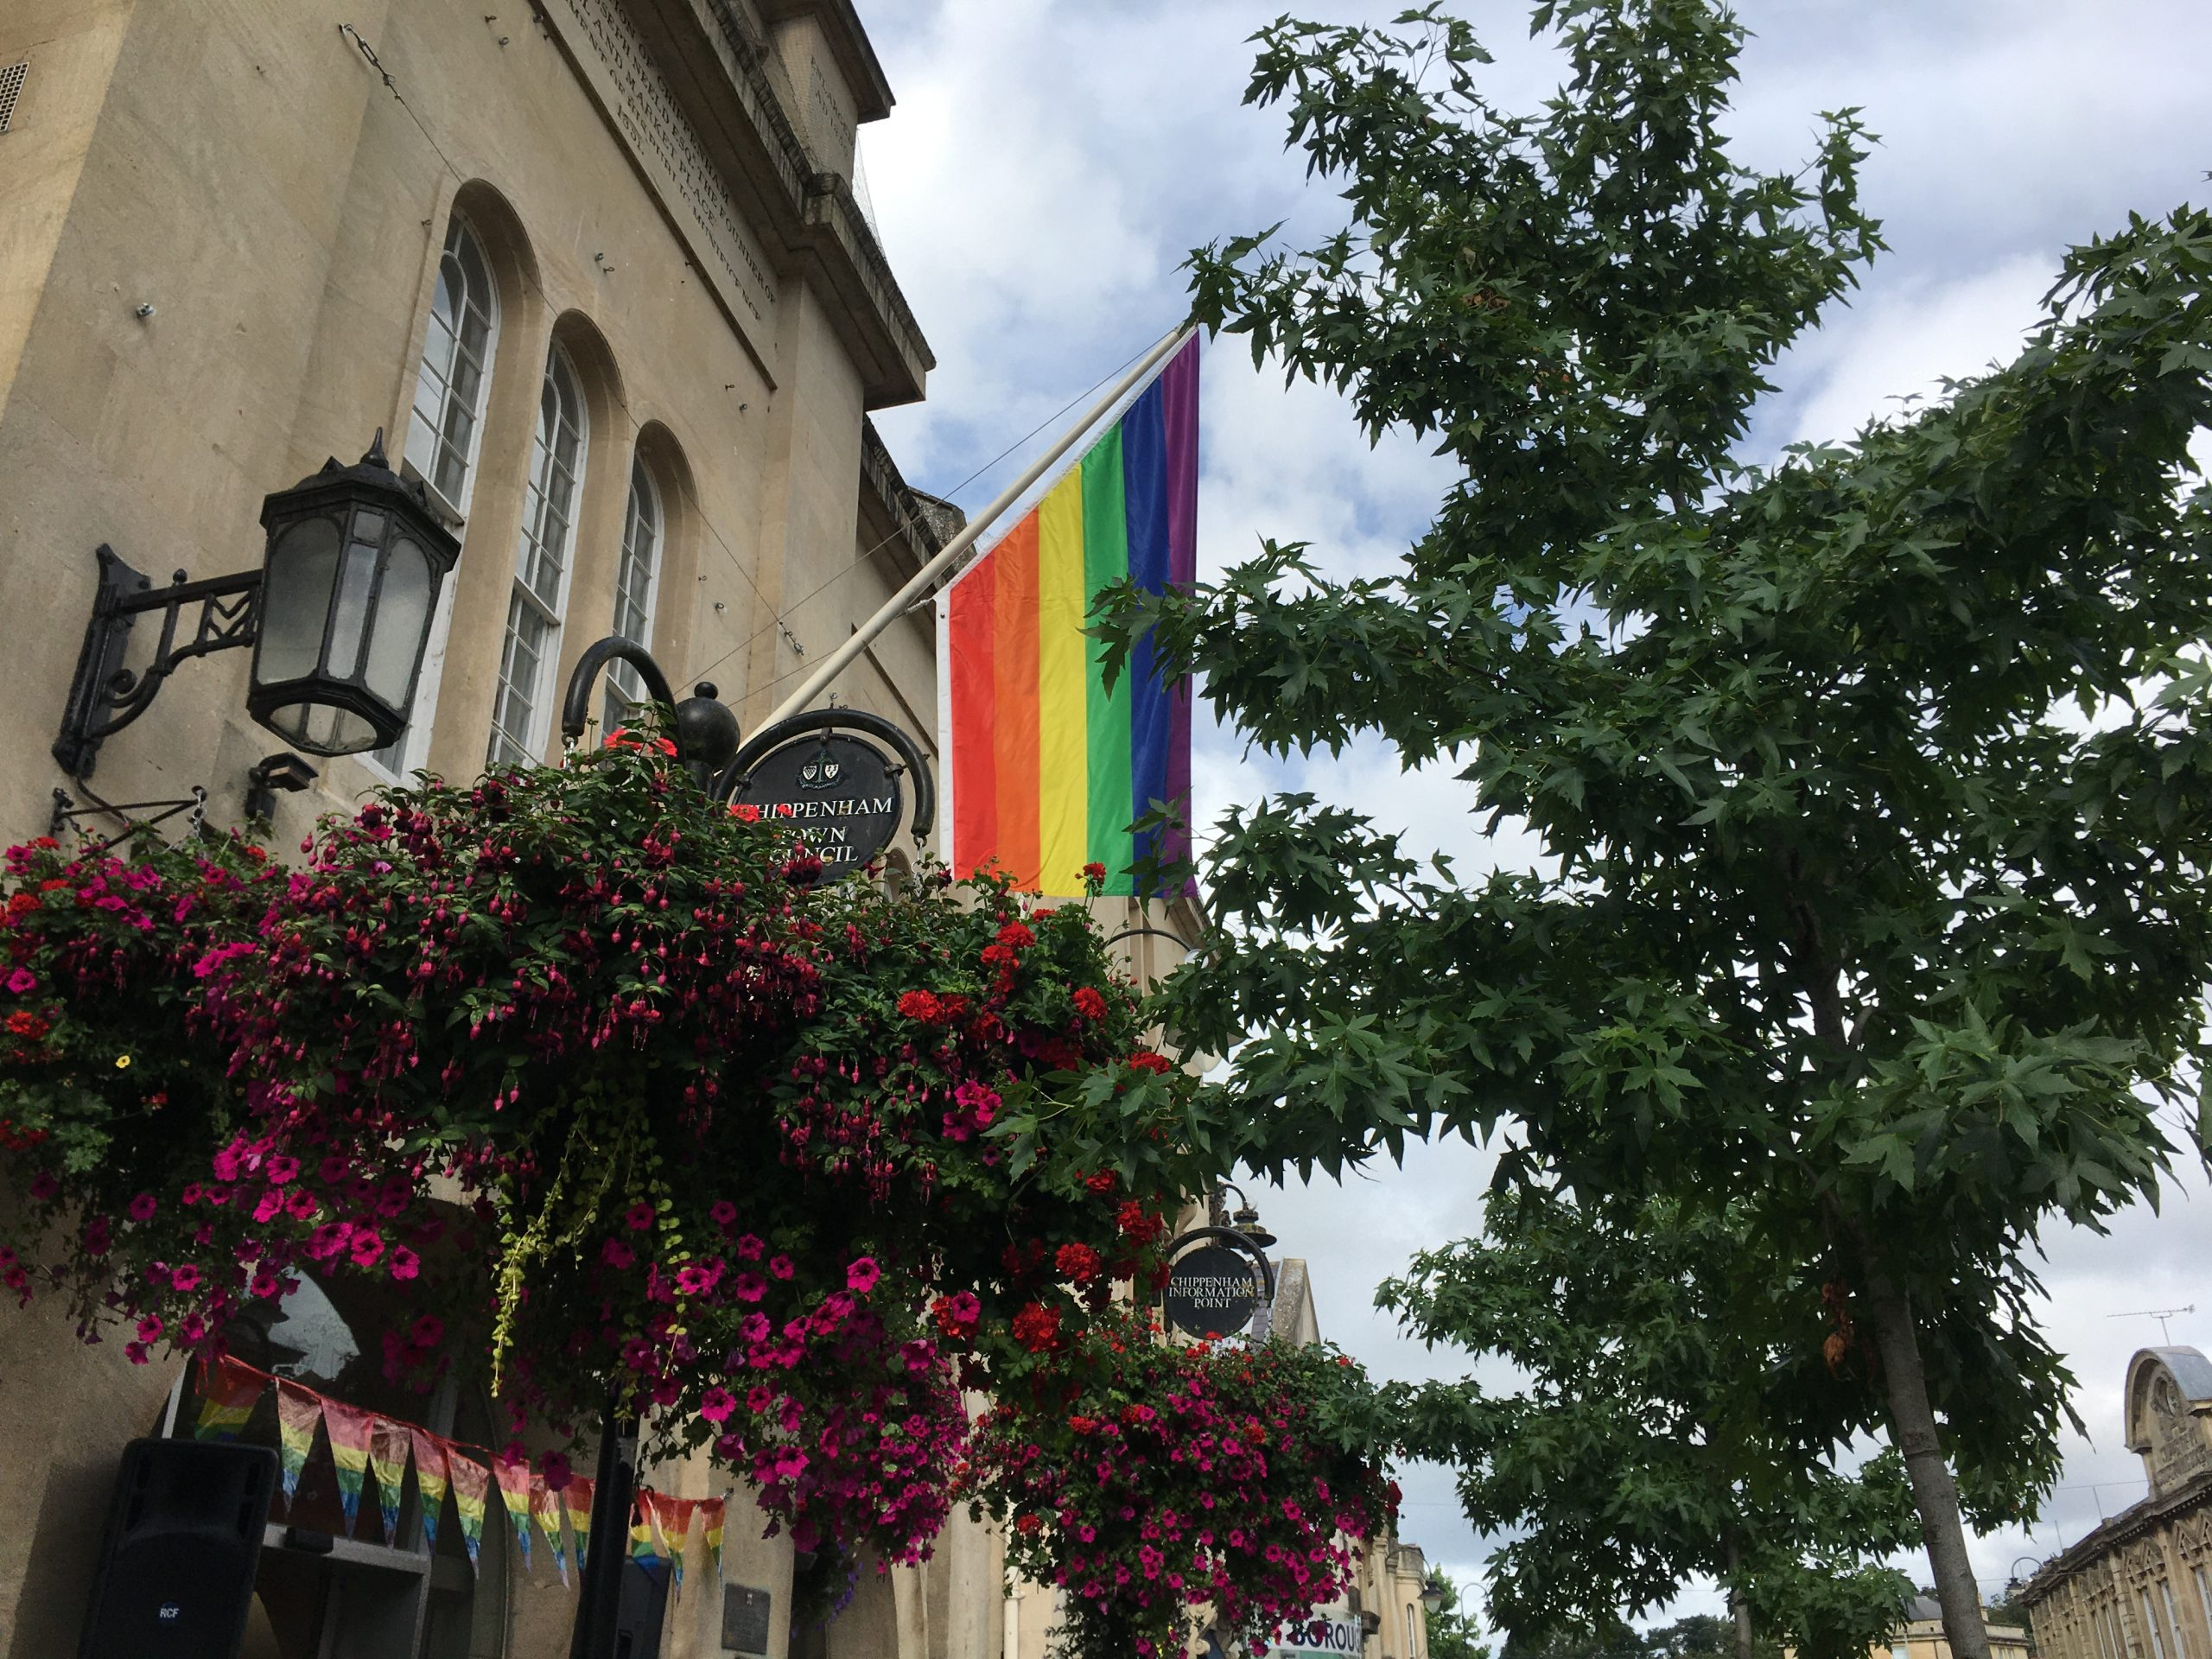 Pride flag which consists of red, orange, yellow, green, blue and purple stripes raised at the Town Hall